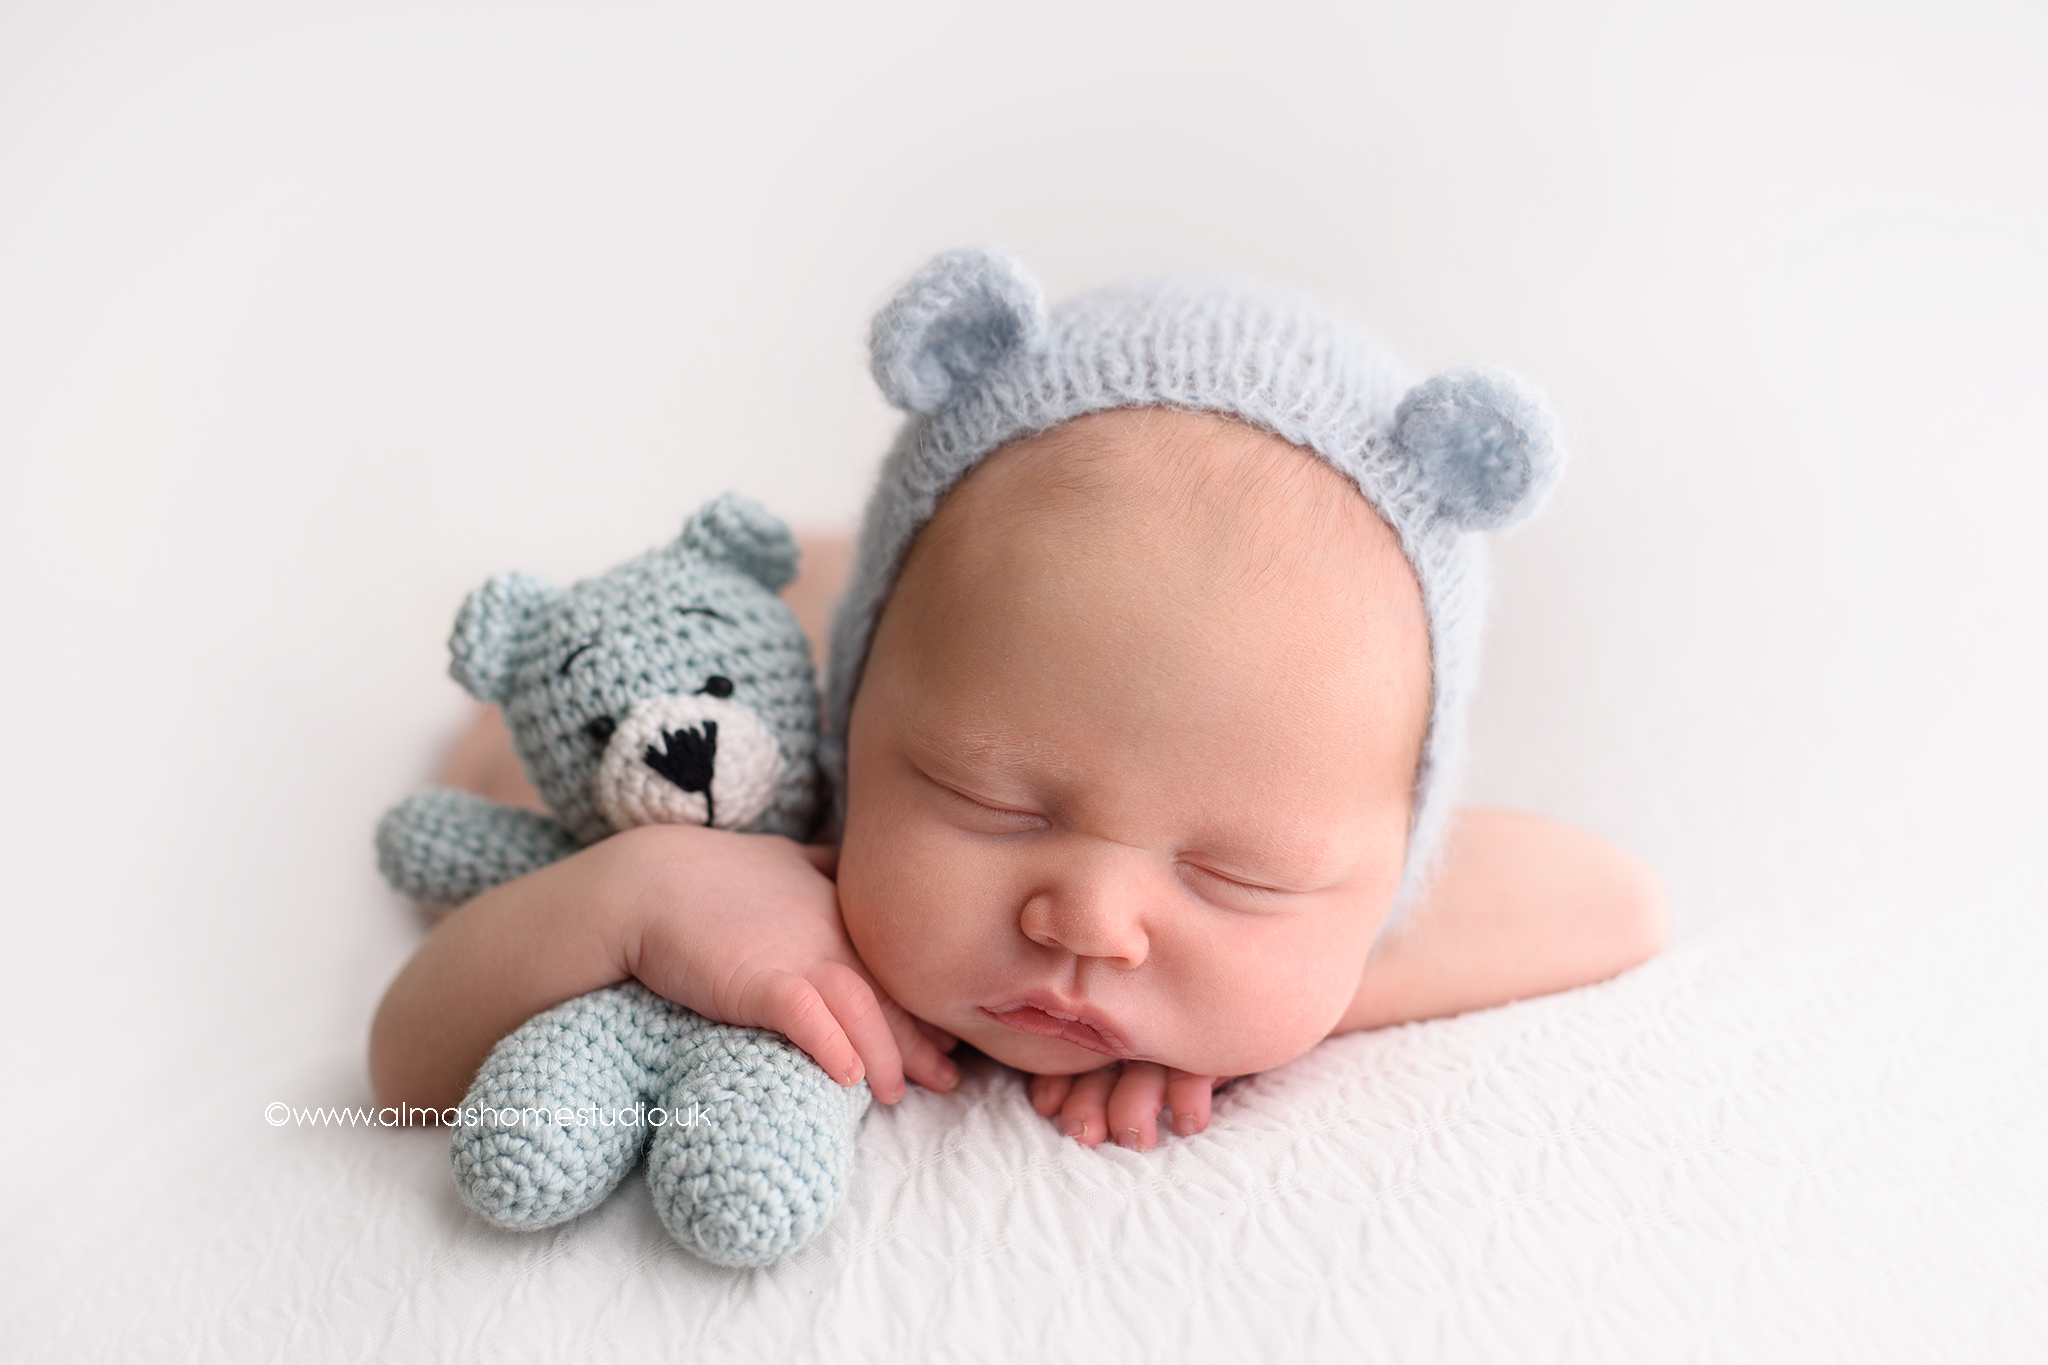 Newborn photographer near me Blandford Forum, Dorset